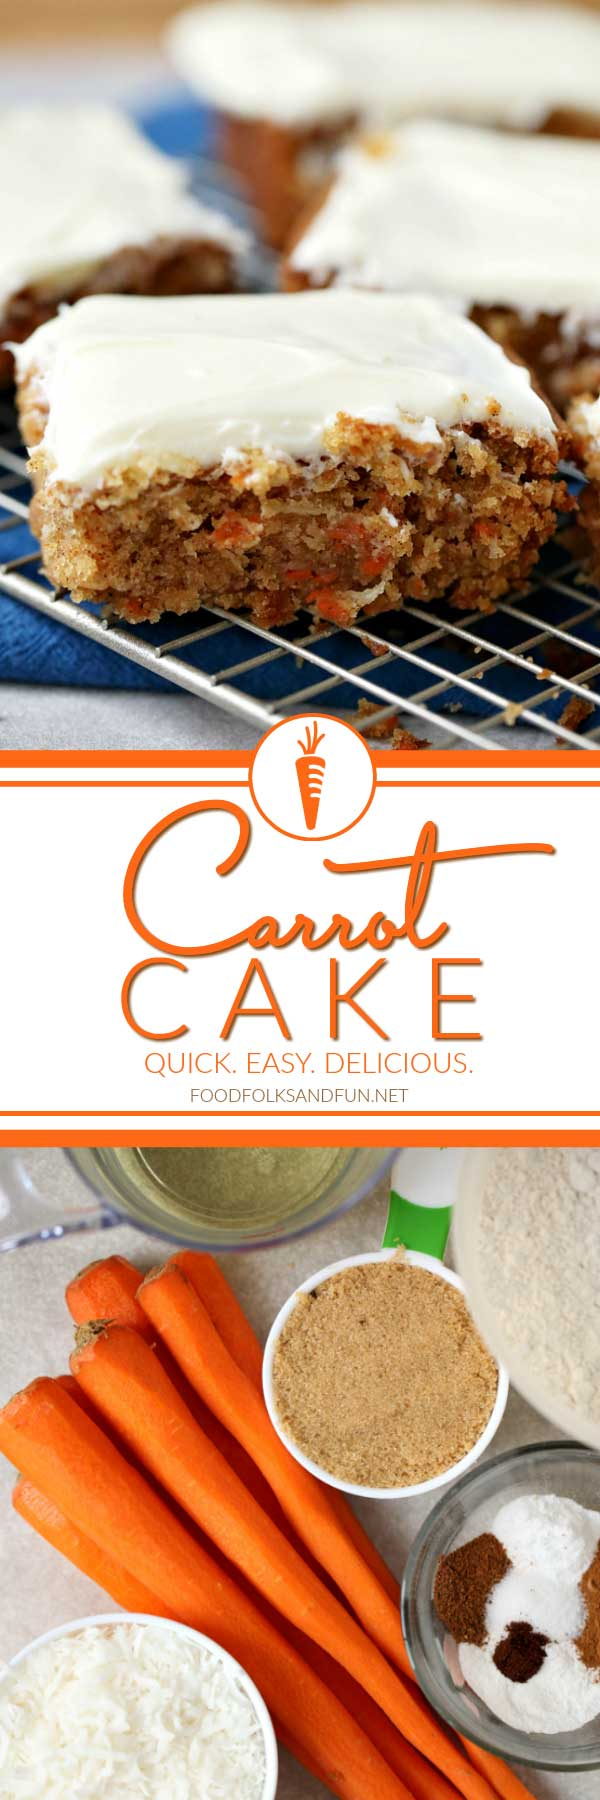 This Emergency Carrot Cake recipe is just the thing when you get a hankering for carrot cake and need it fast! It's a simple recipe with all of the important elements: spicy moist cake and fluffy cream cheese frosting.